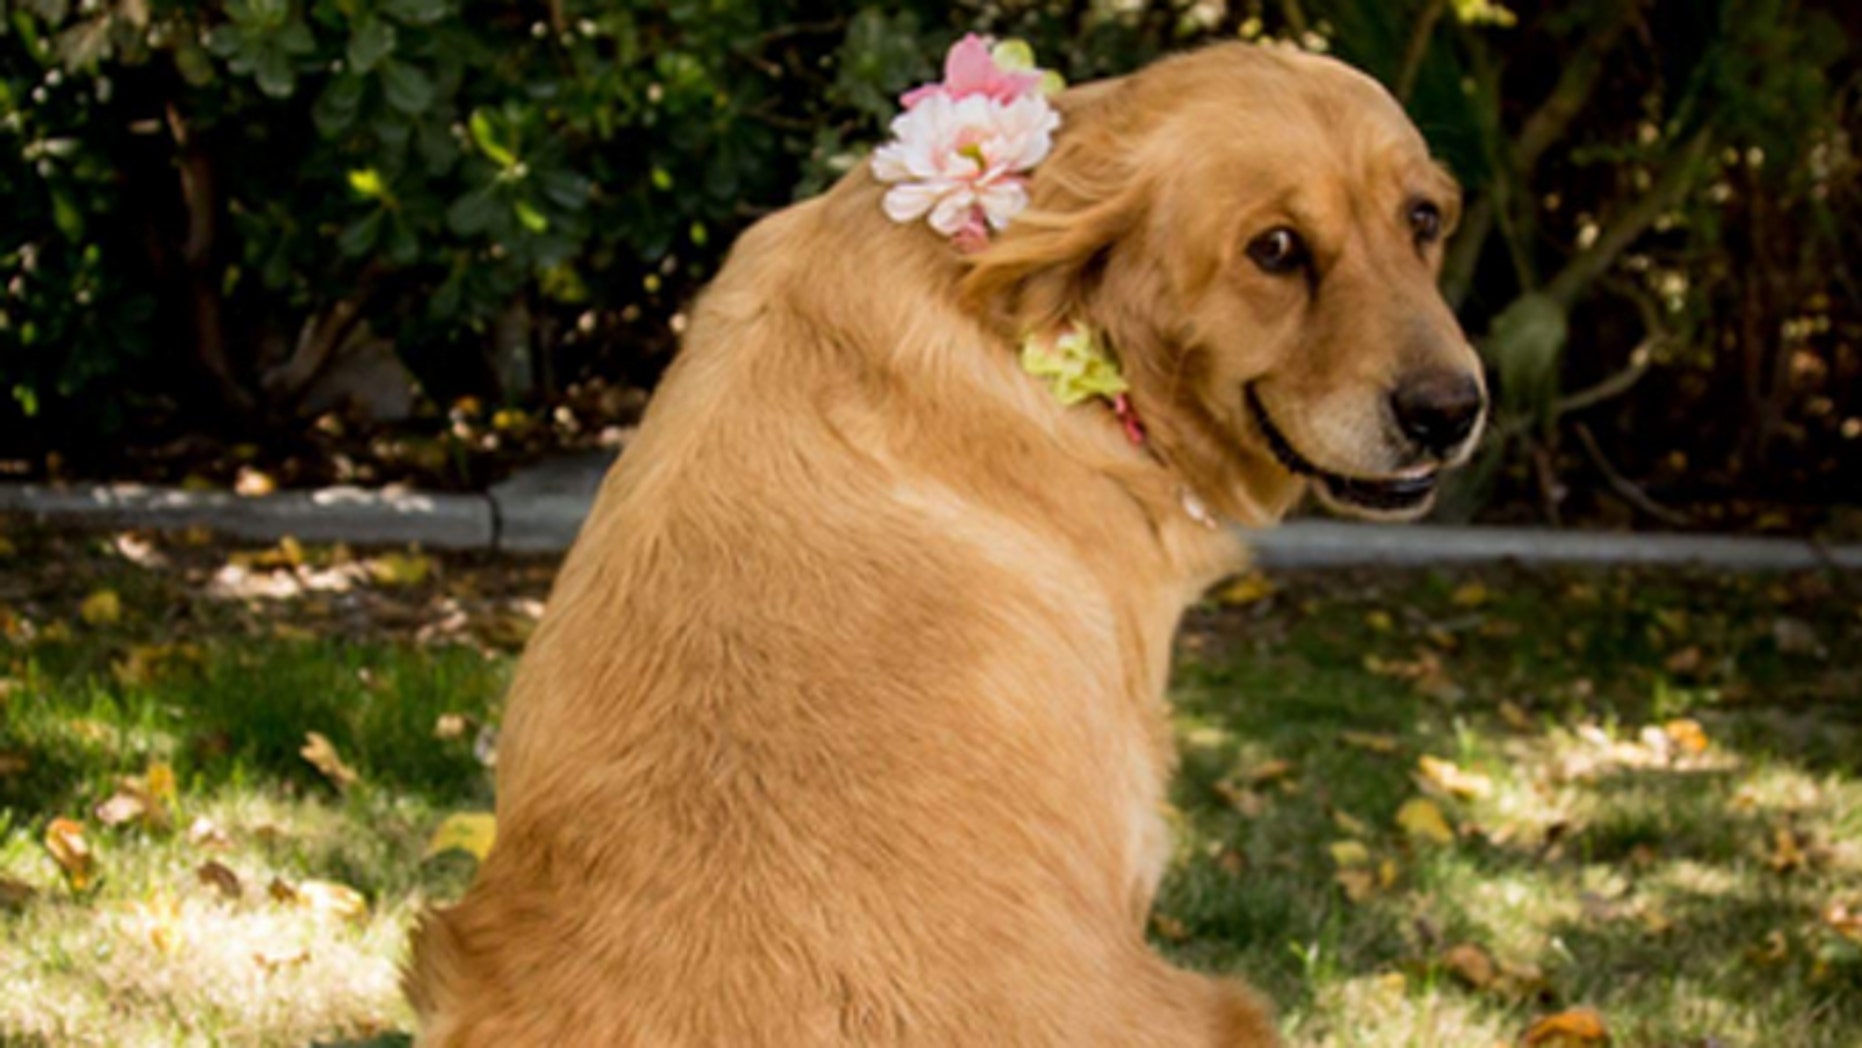 Chanel, a 5-year-old golden retriever, was featured in a maternity photoshoot.